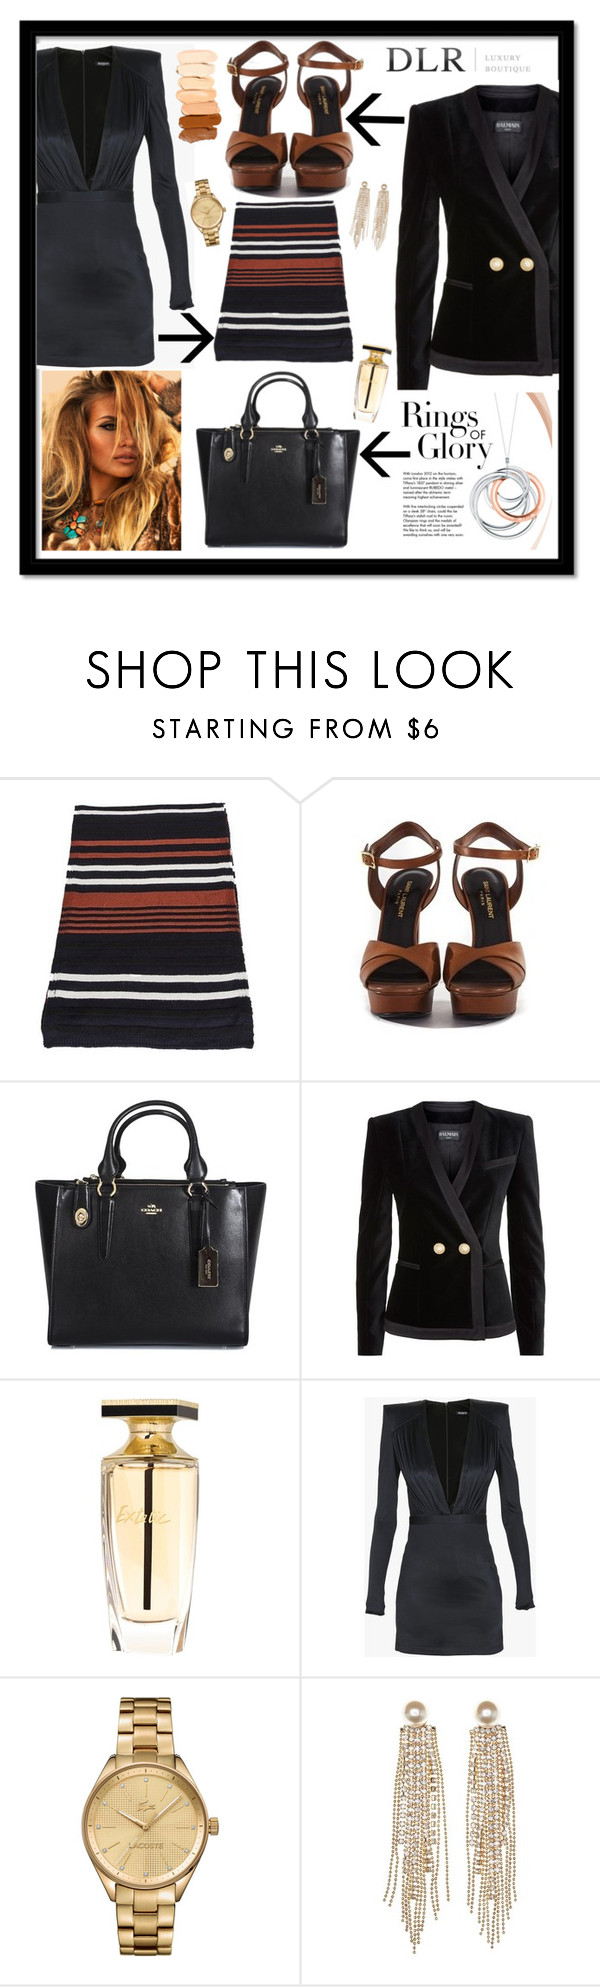 """""""DLR Boutique"""" by gaby-mil ❤ liked on Polyvore featuring Sonia Rykiel, Coach, Balmain, Tiffany & Co., Lacoste, Charlotte Russe and dlr"""